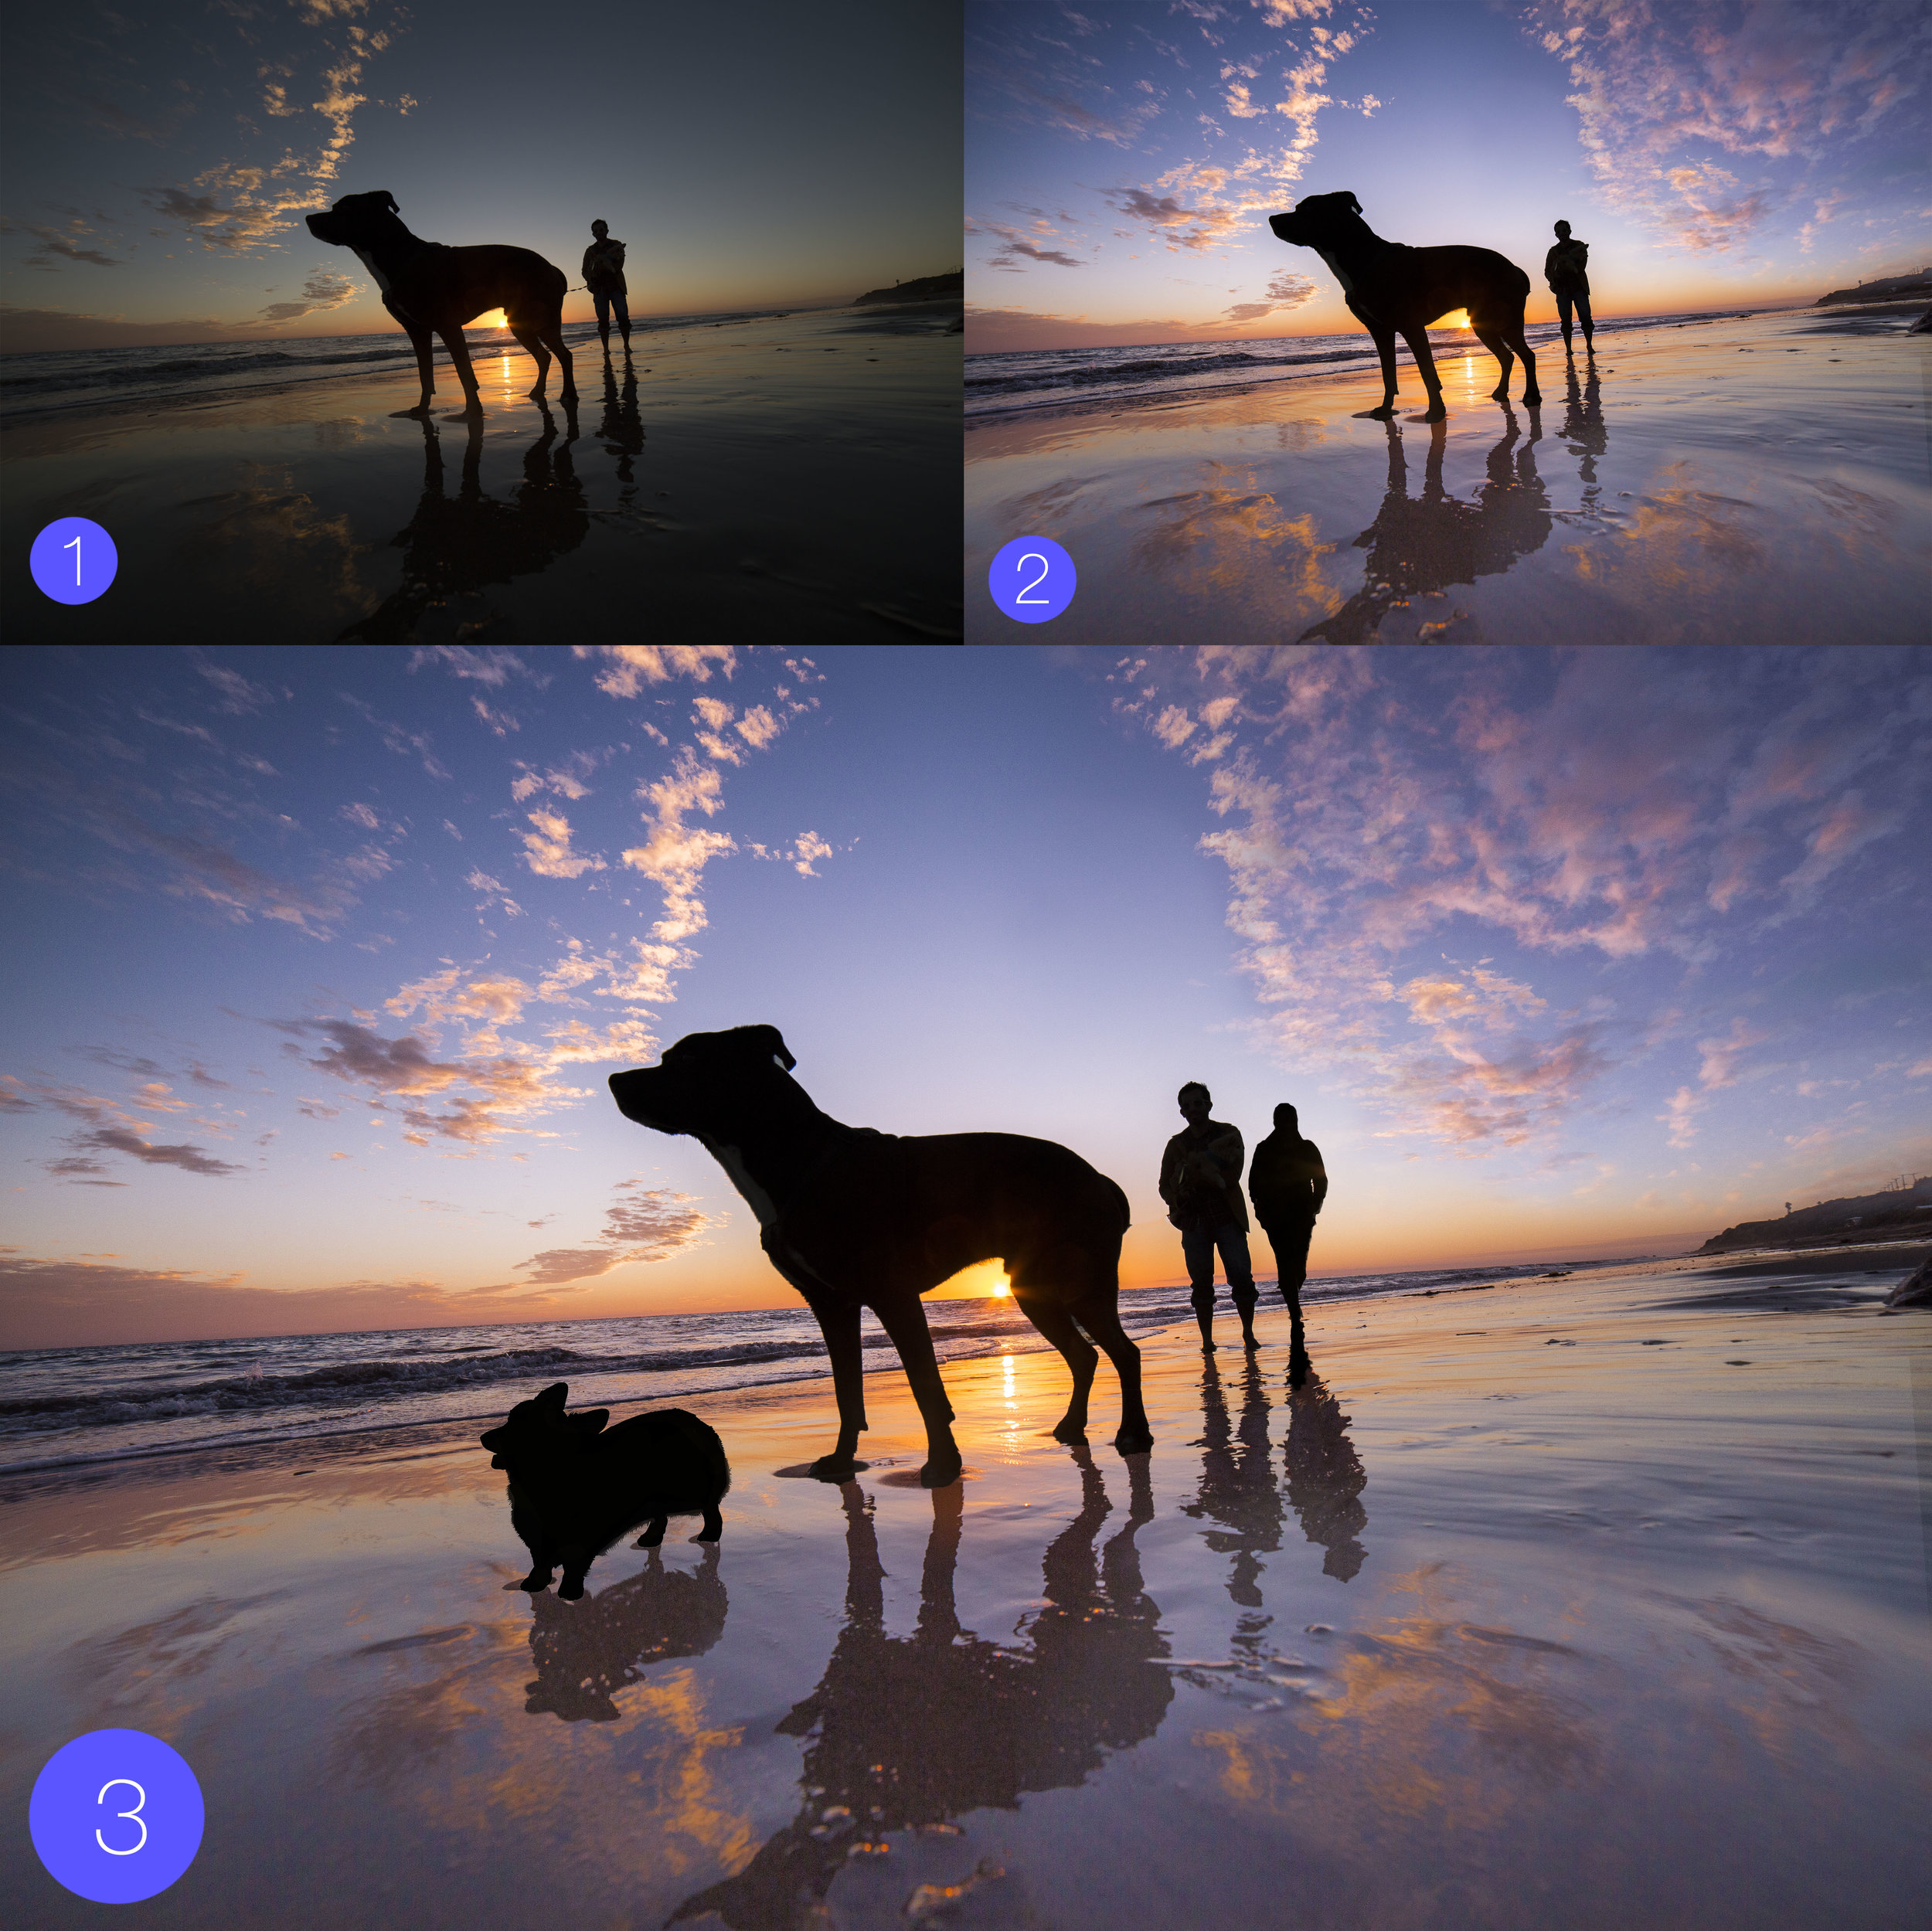 Kai silhouette leo carrillo before and after photoshop.jpg